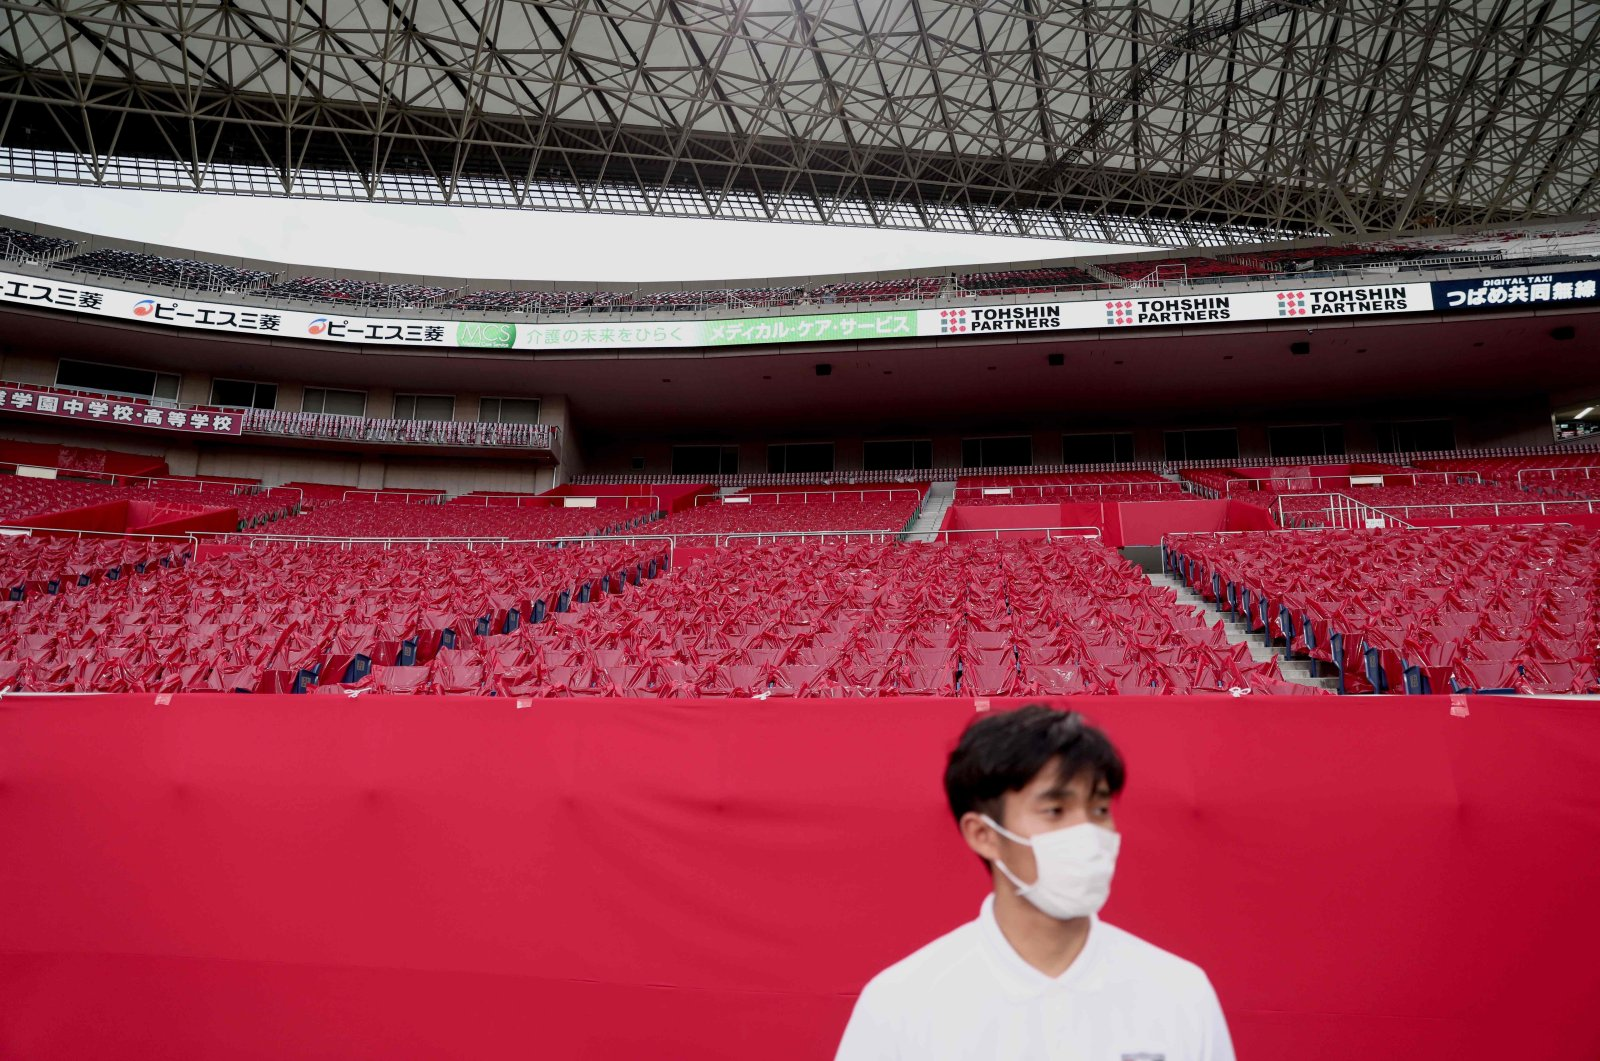 An employee wearing a face mask stands in front of empty seats before the start of the J-League football match between Urawa Reds and Yokohama F. Marinos in Saitama, Japan, July 4, 2020. (AP Photo)